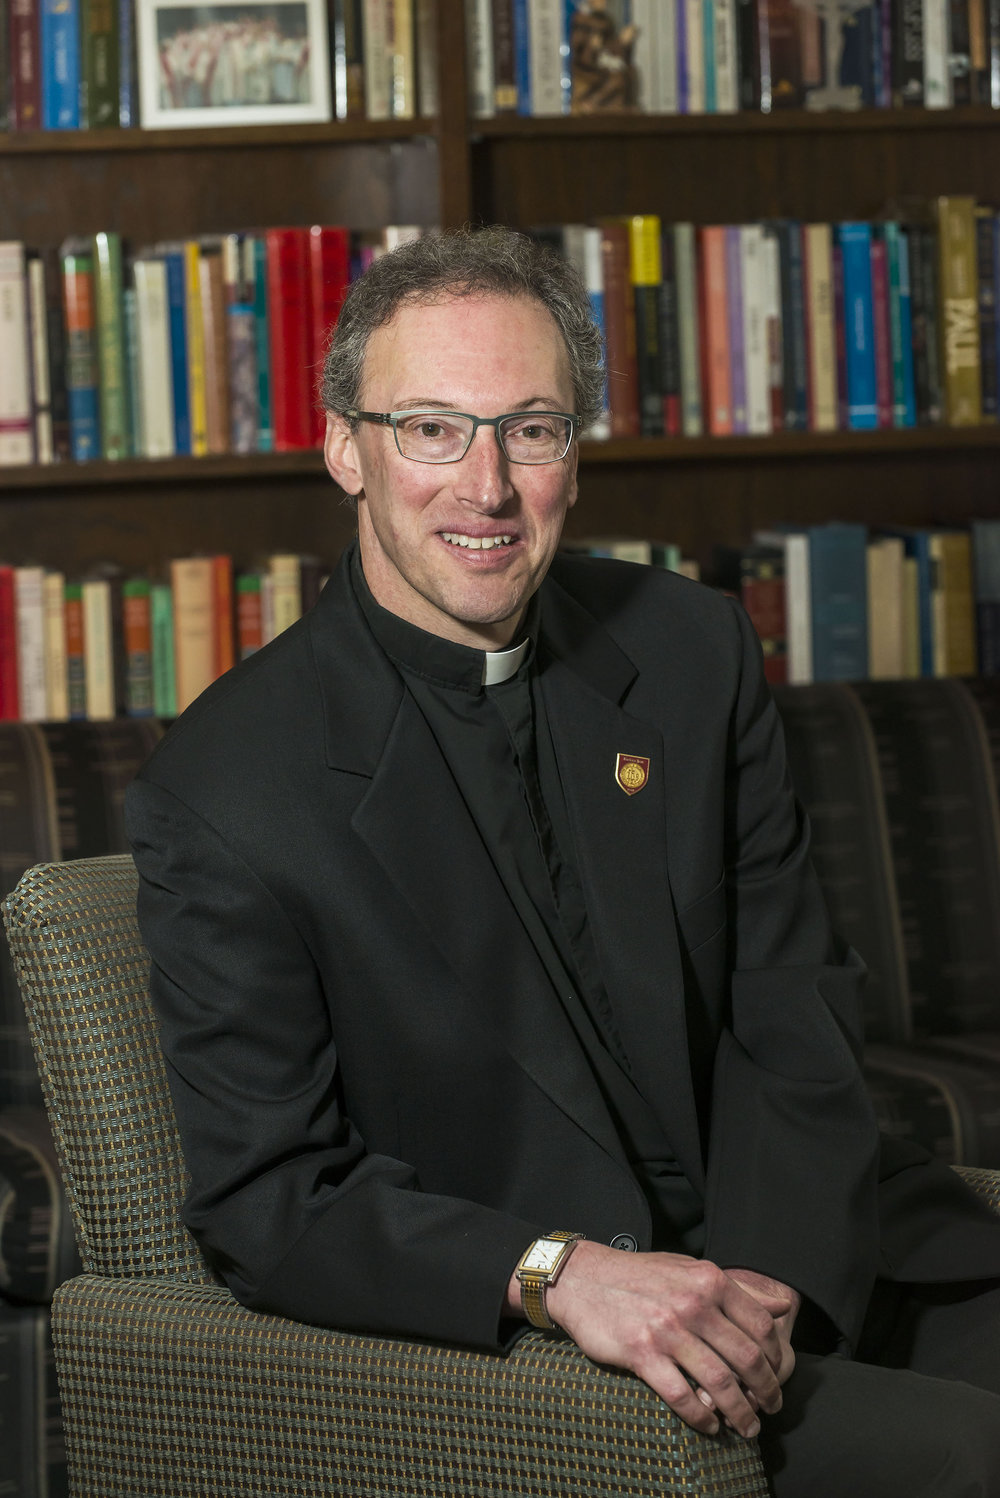 Rev. Thomas Stegman, S.J. (Photo by Lee Pellegrini, Boston College)